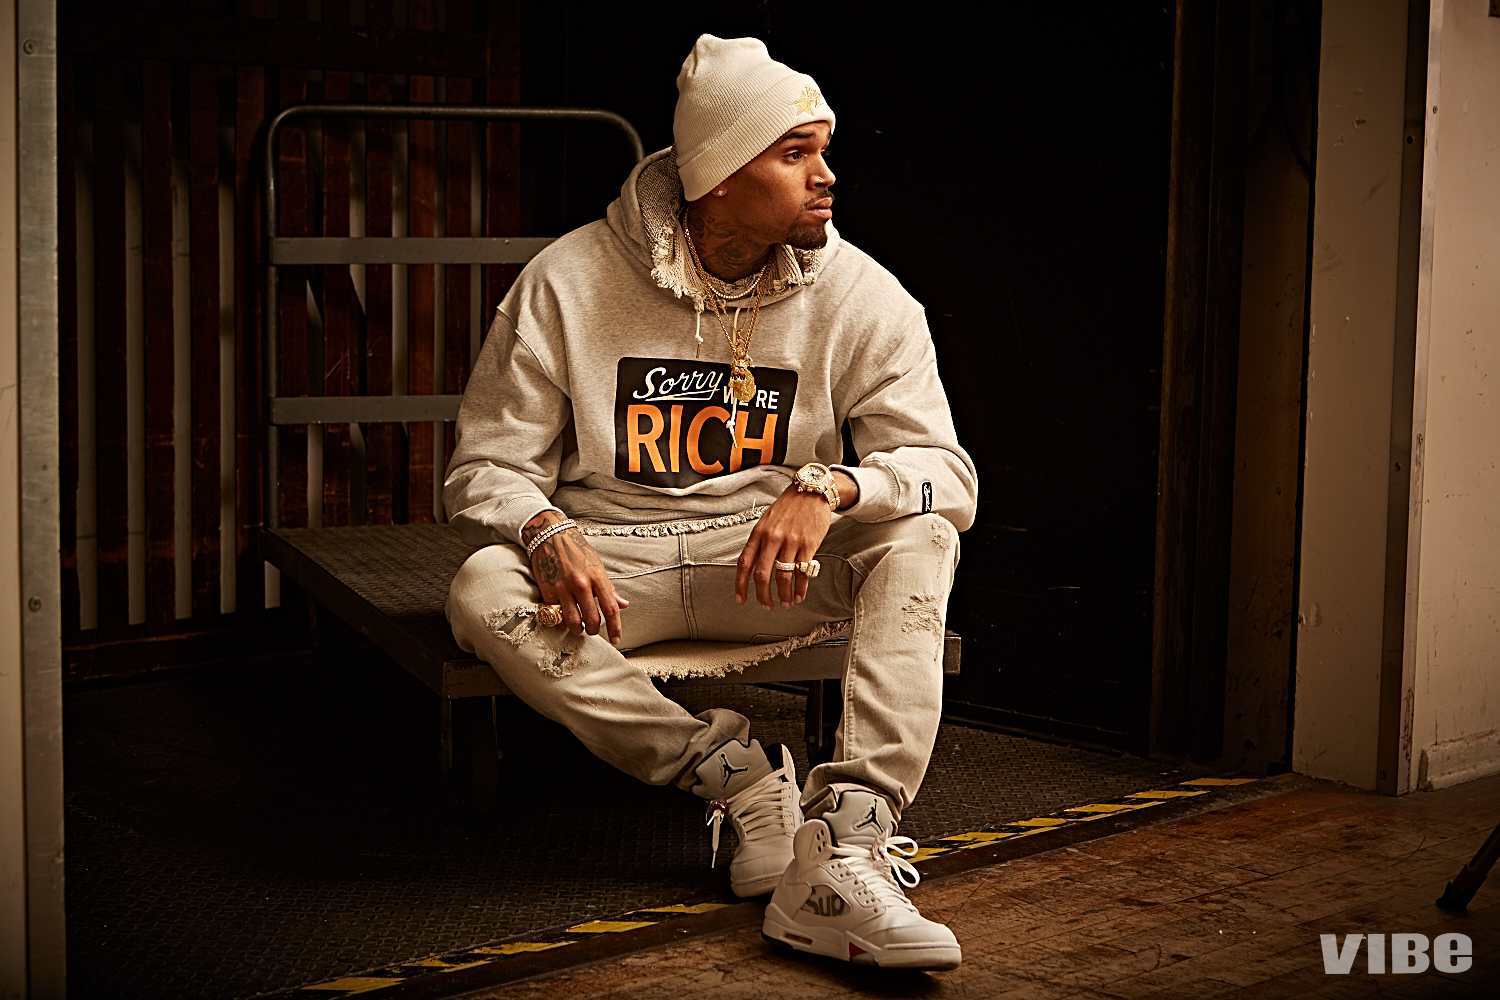 Chris-Brown-VIBE-Cover-Story-1-1500x1000